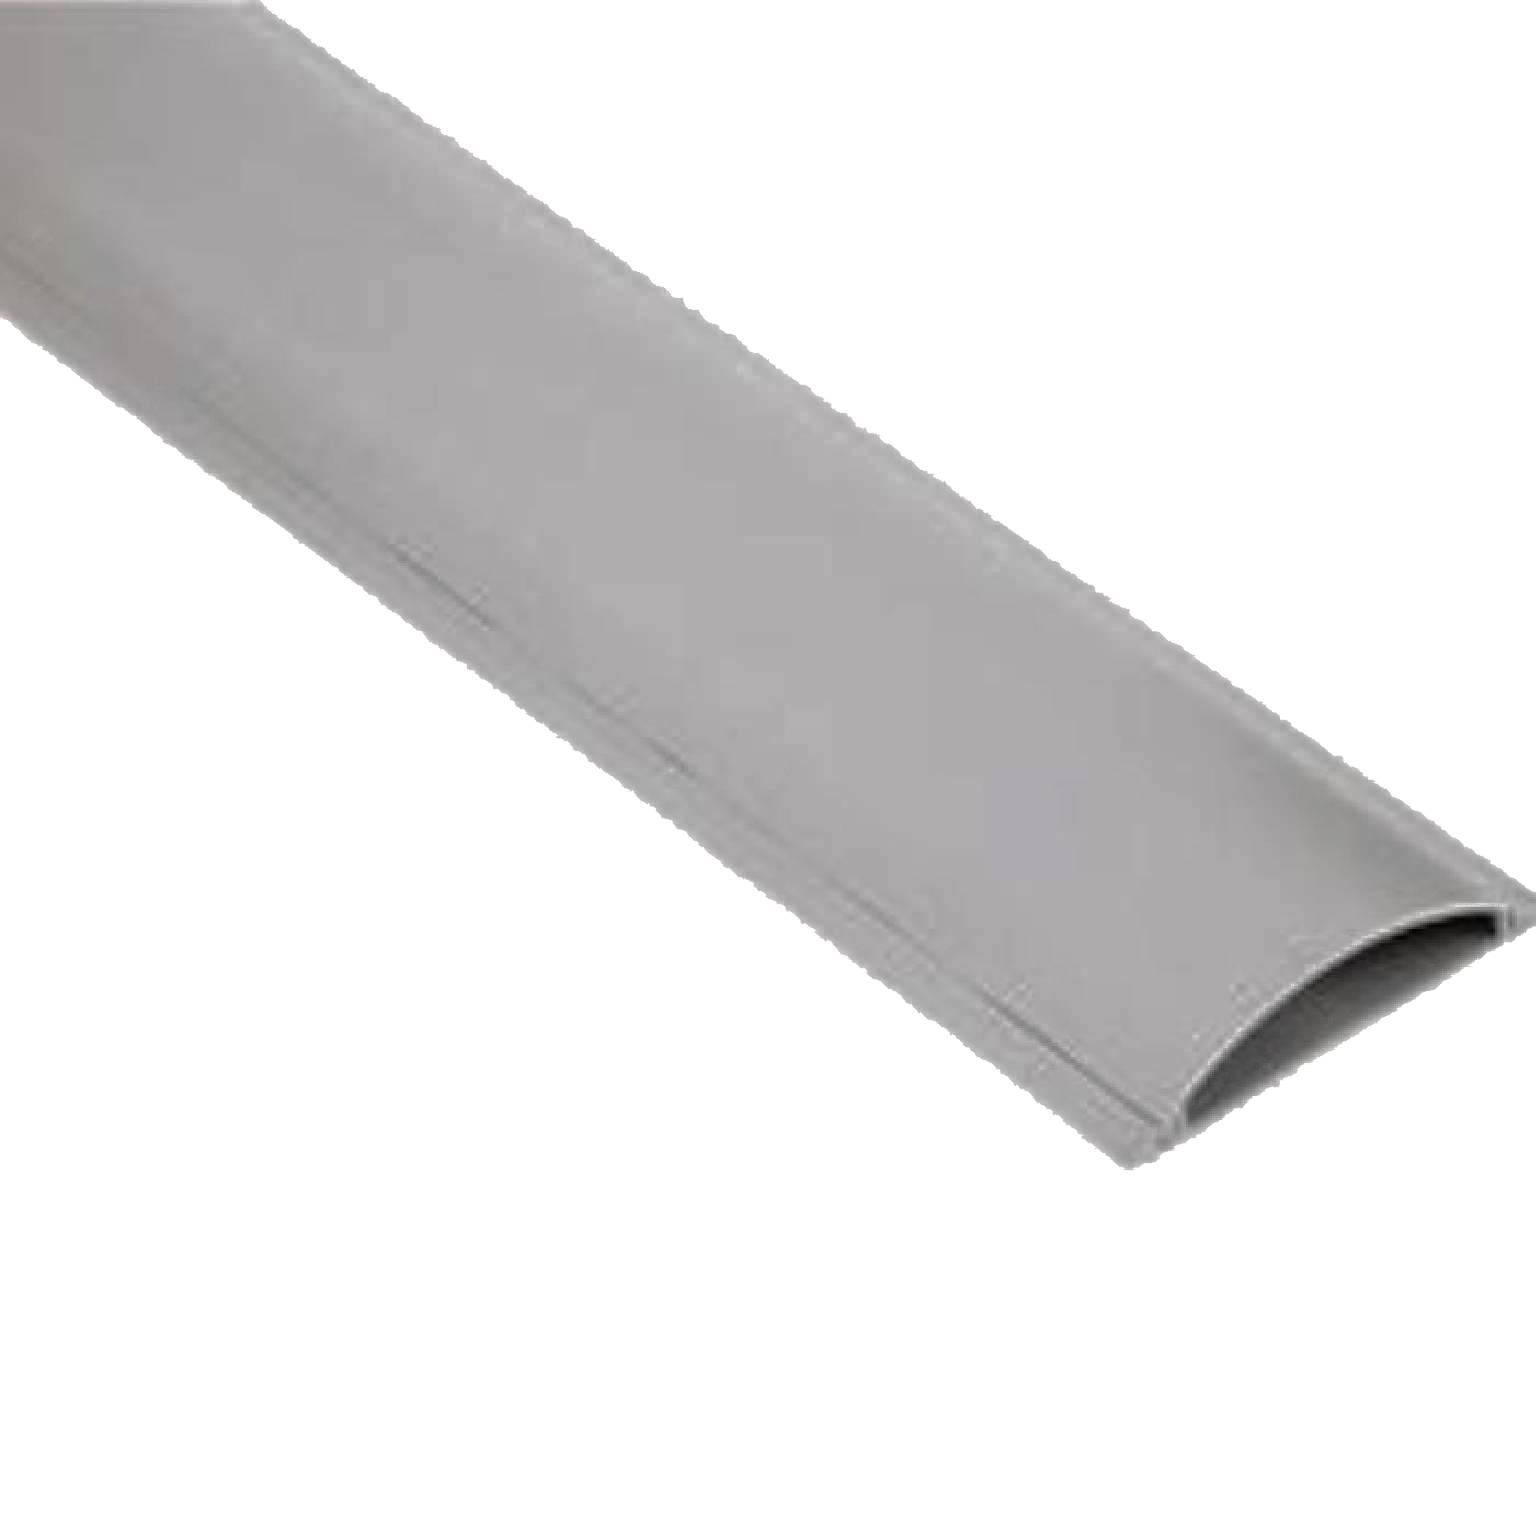 Kabelgoot - PVC - 70 x 21 mm Hoogte: 21 mm